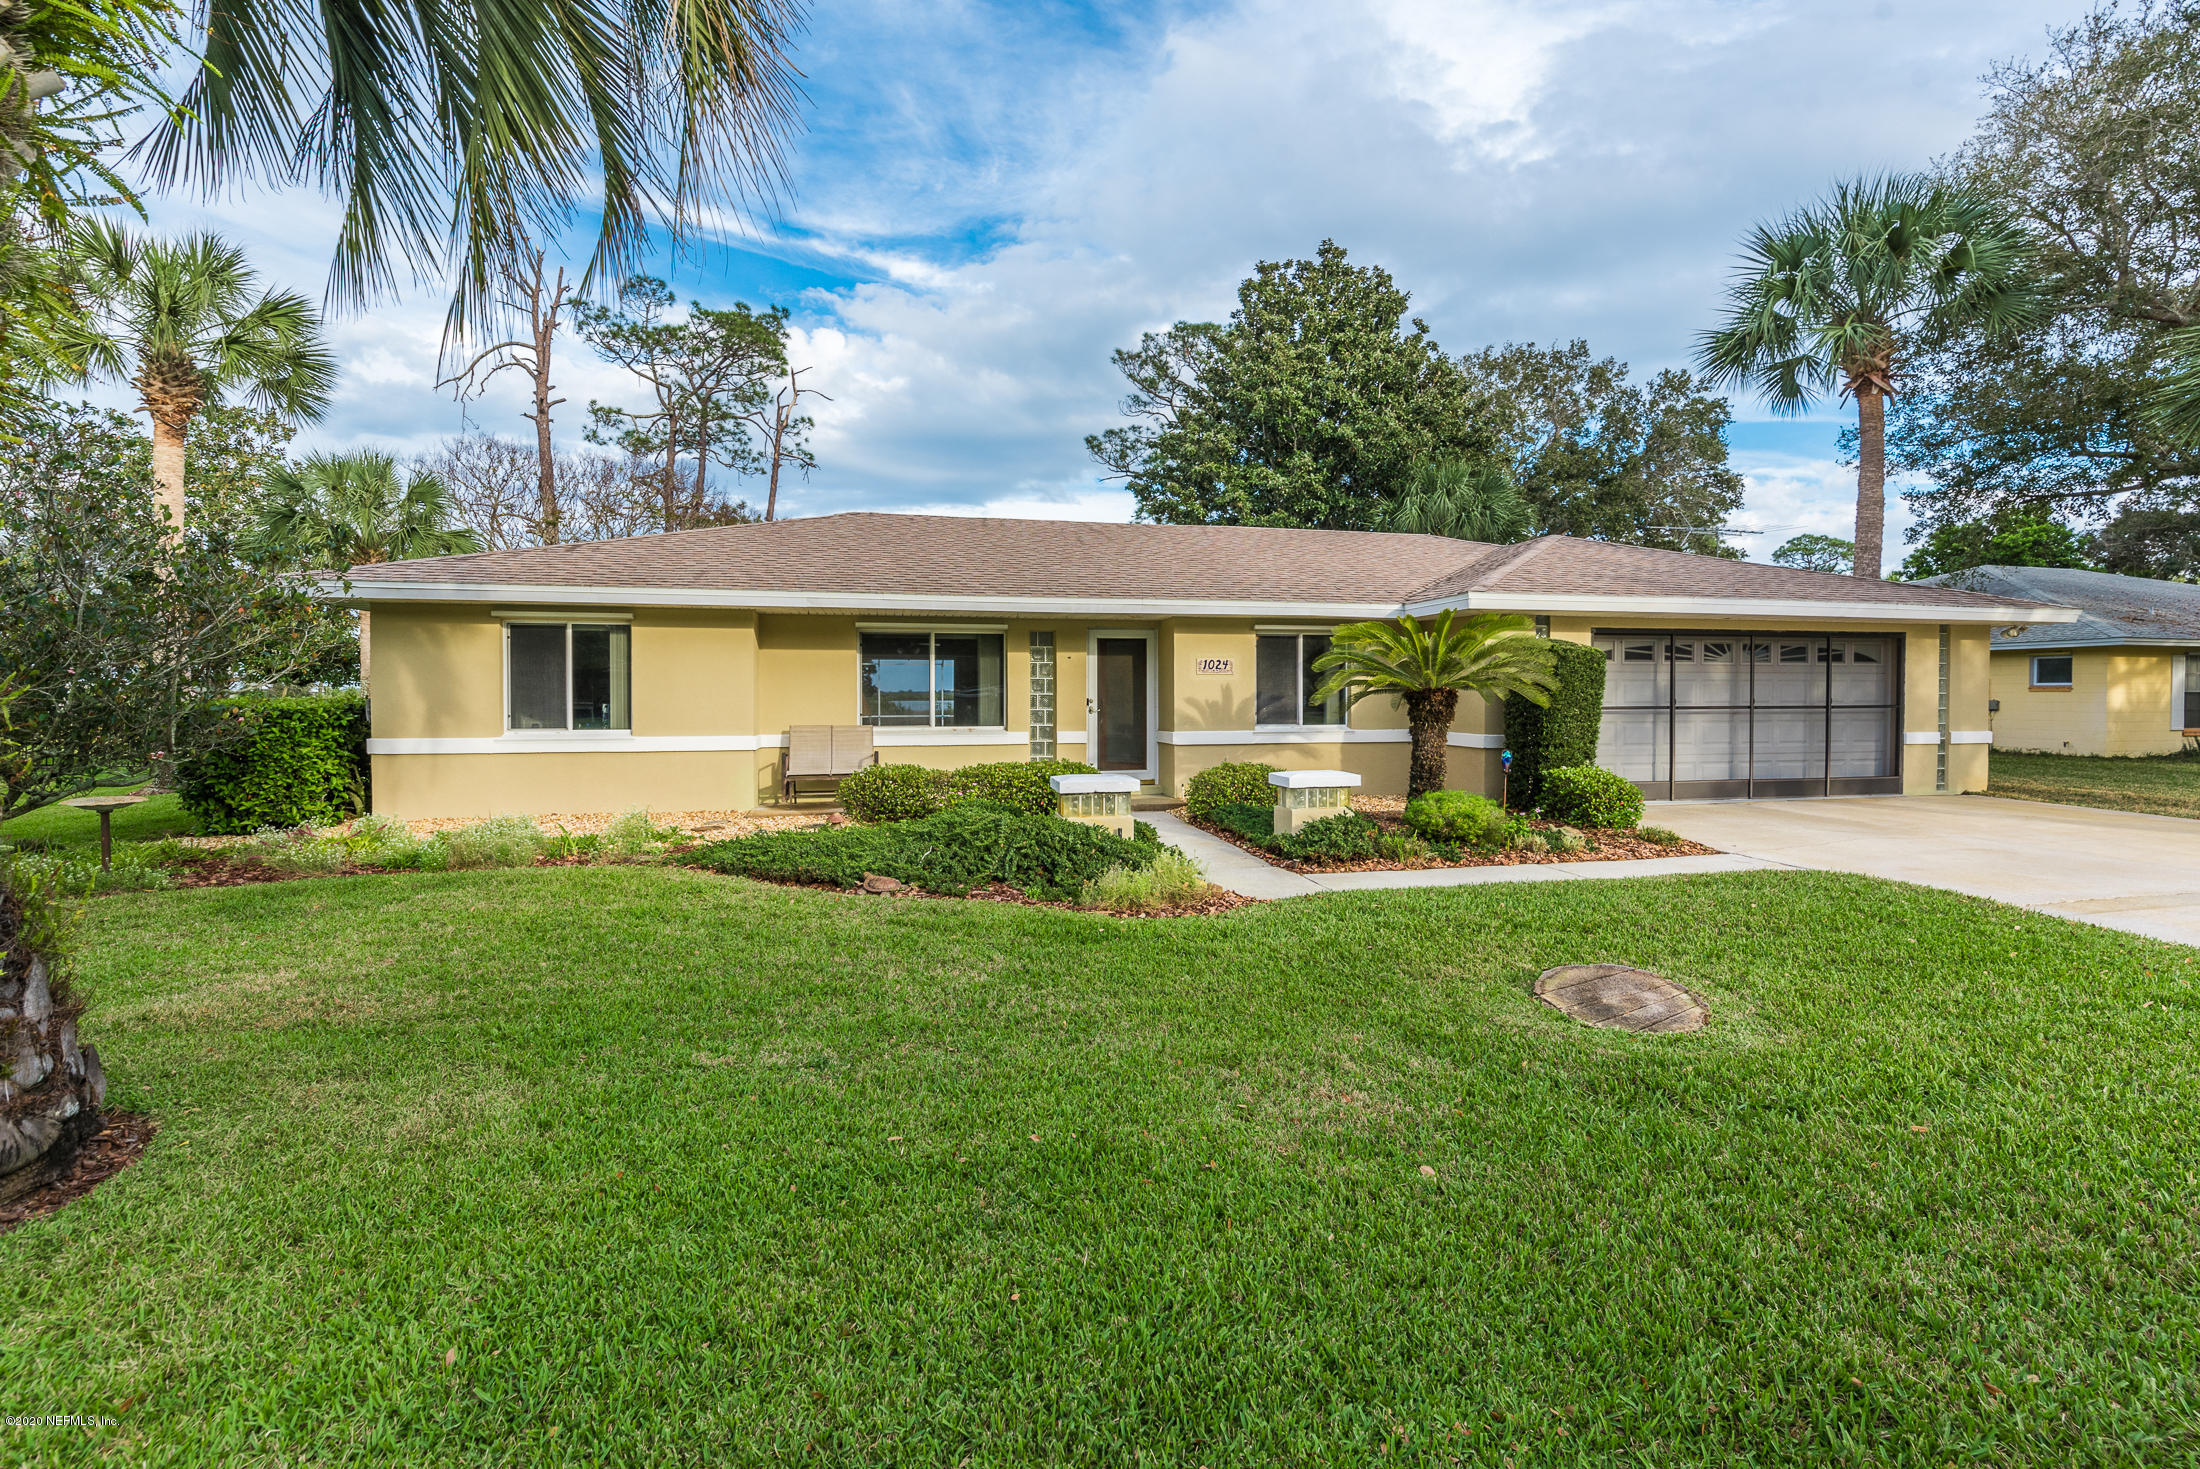 1024 ALCALA, ST AUGUSTINE, FLORIDA 32086, 3 Bedrooms Bedrooms, ,4 BathroomsBathrooms,Residential,For sale,ALCALA,1039622